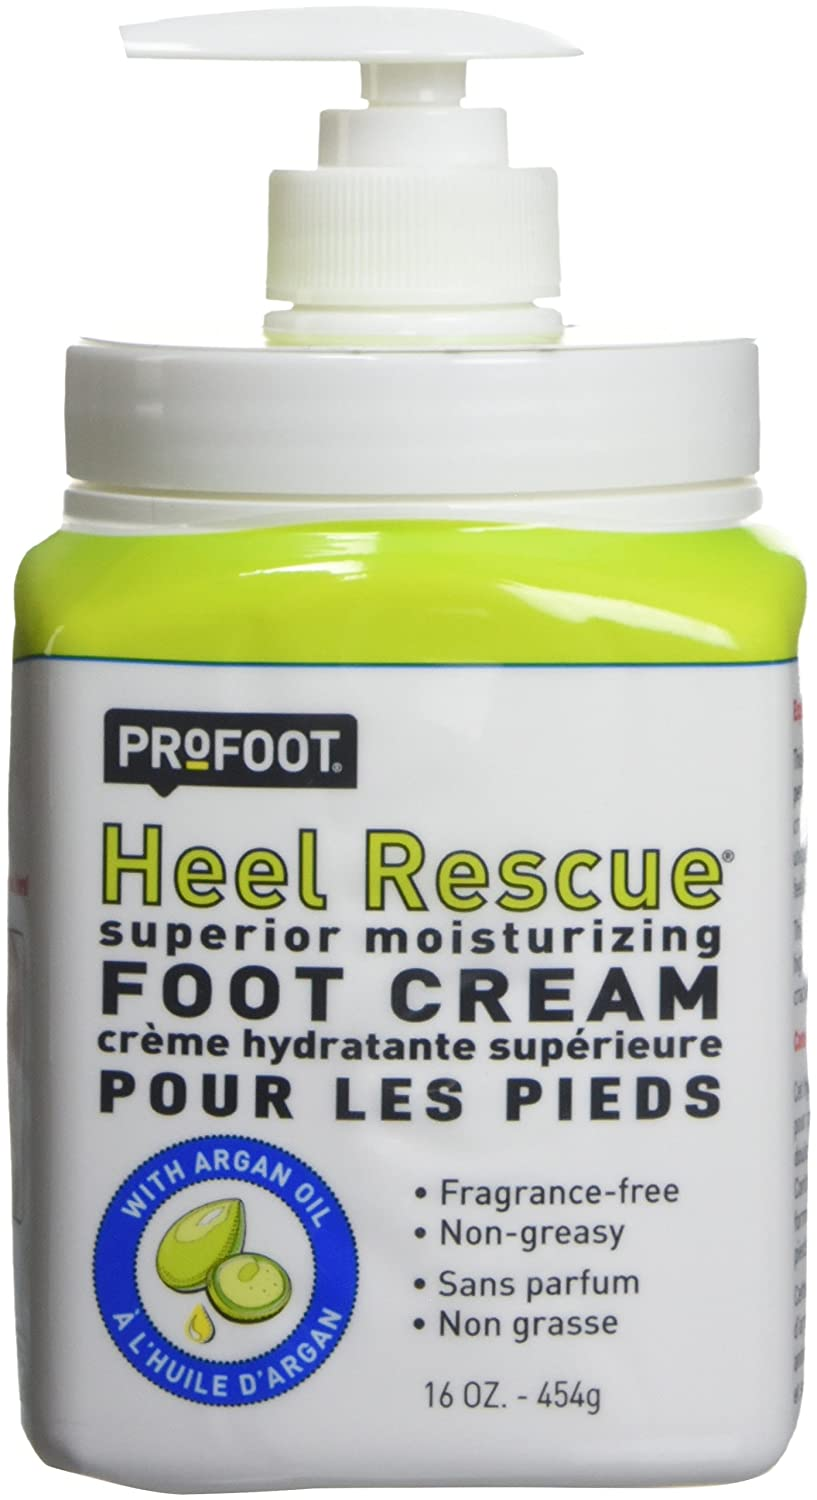 Profoot Care Heel Rescue Superior Moisturizing Foot Cream, 16 Oz (Pack of 2)